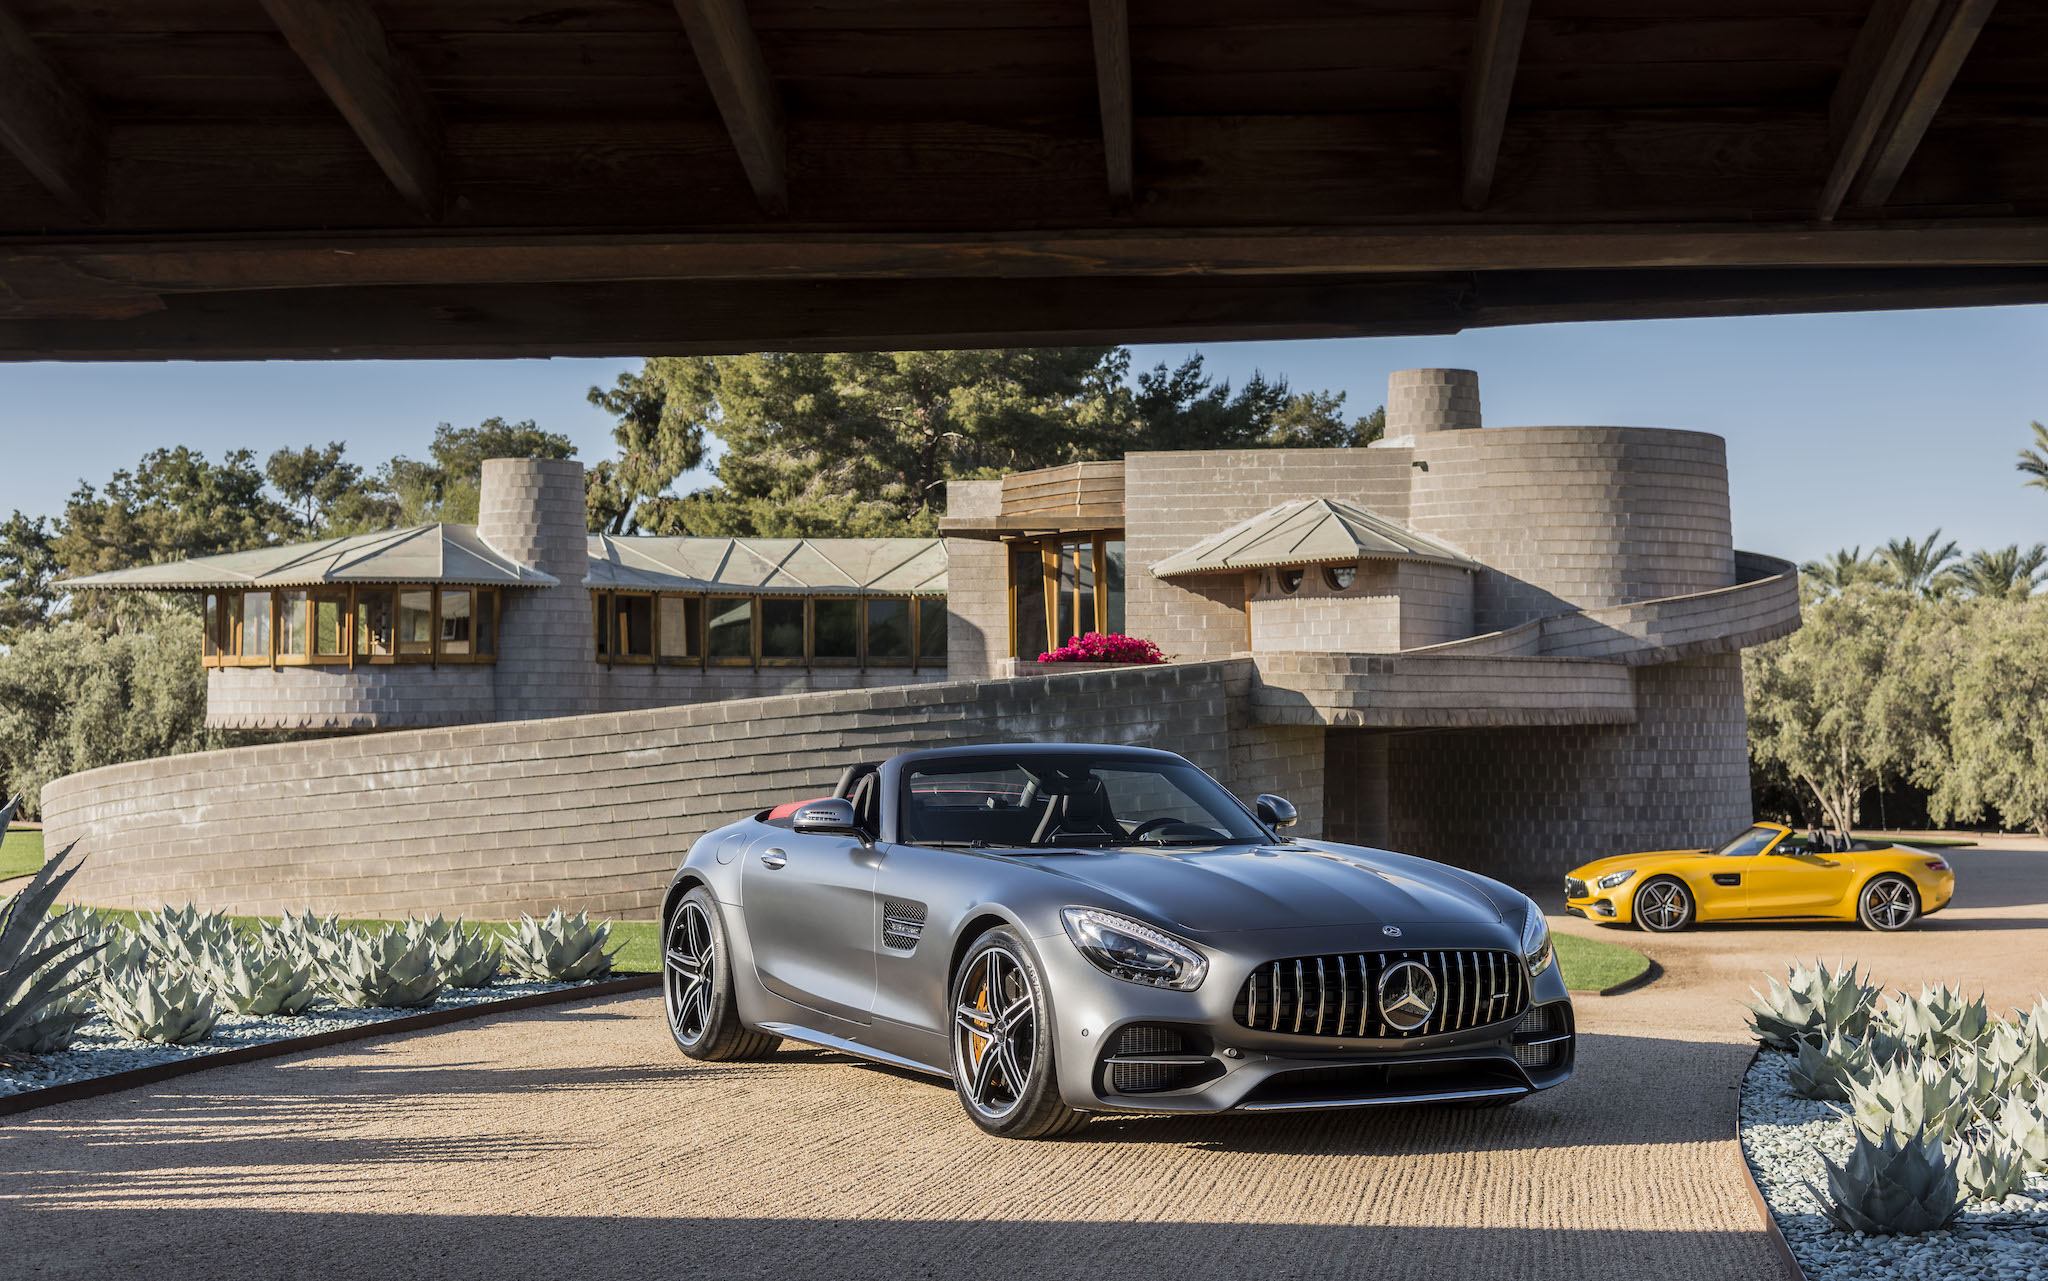 New 2018 Mercedes Amg Gt C Roadster German Brute Or Exotic Alternative Ars Technica